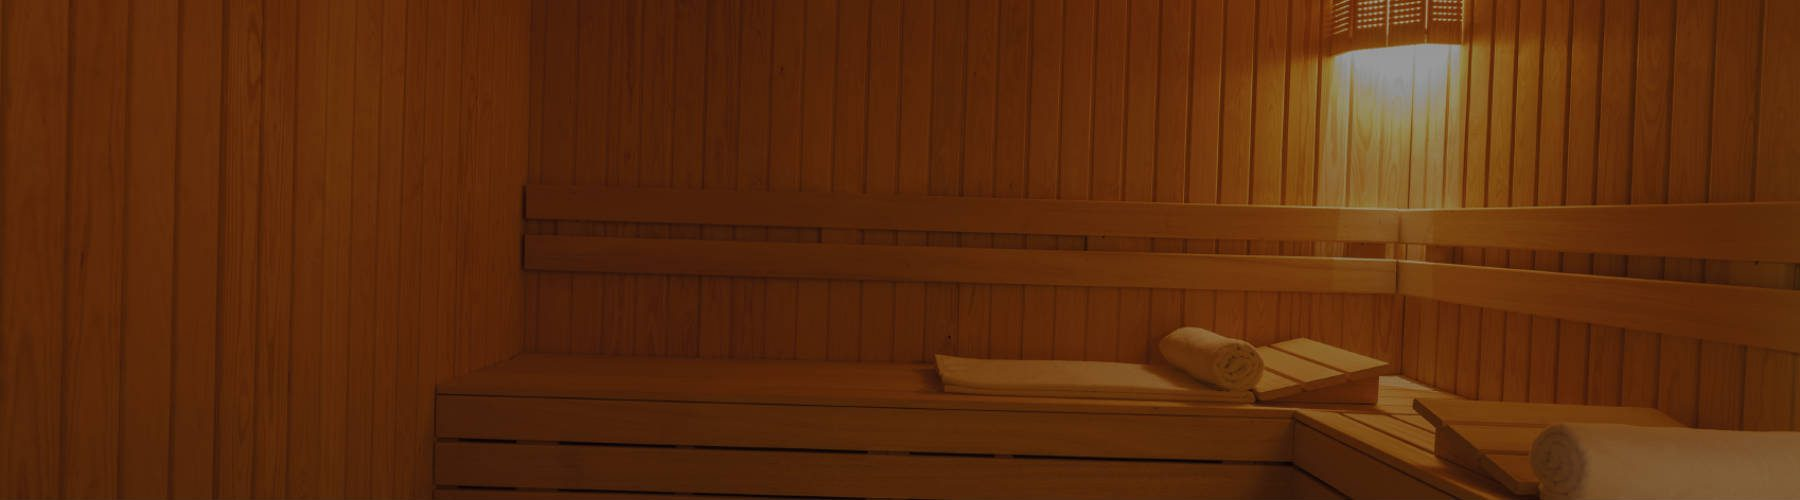 Boost Your Workout Sessions With These Sauna Benefits